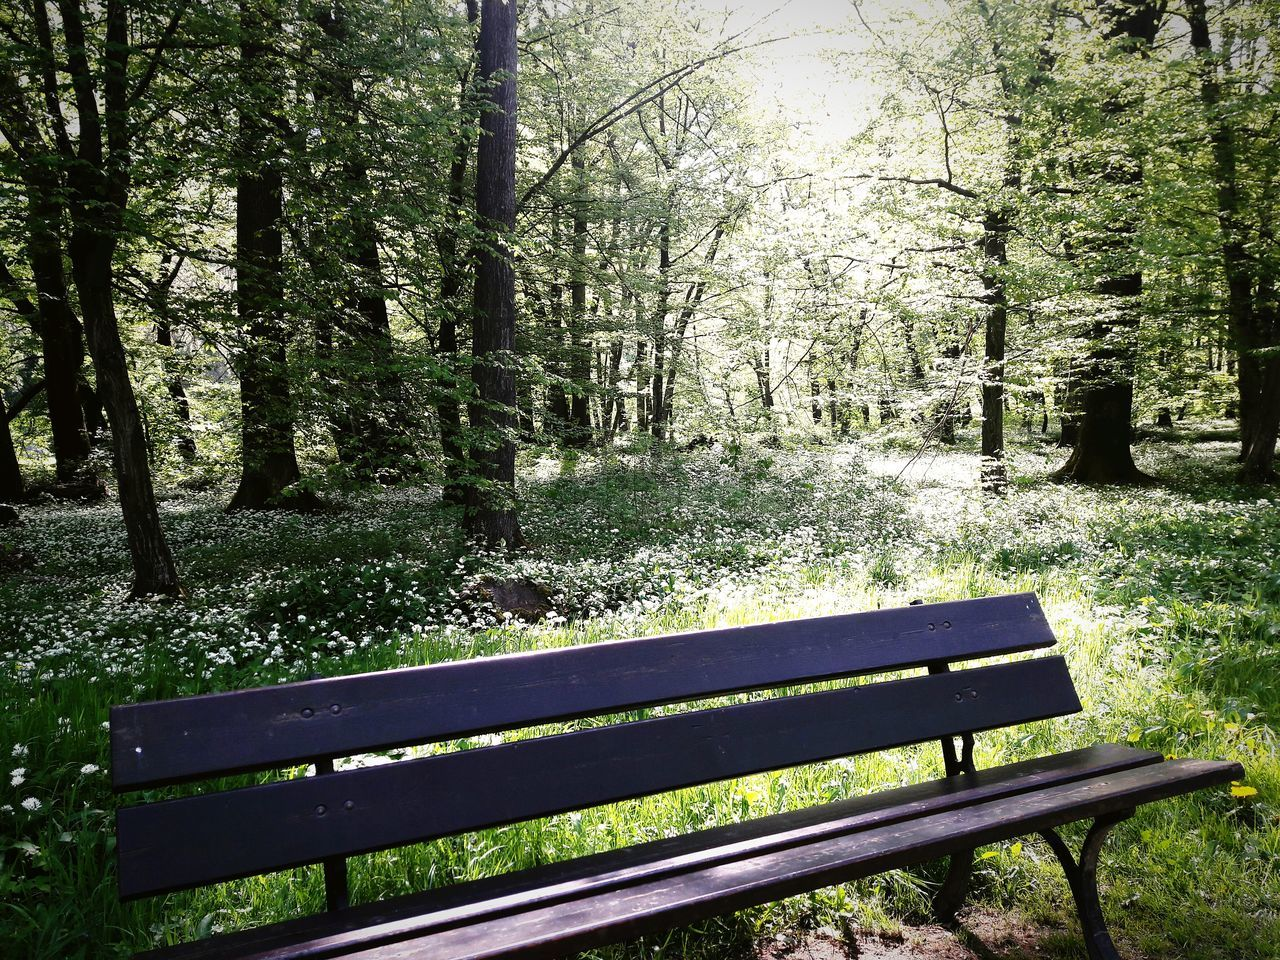 tree, nature, empty, tranquility, day, tranquil scene, forest, landscape, no people, growth, scenics, beauty in nature, outdoors, grass